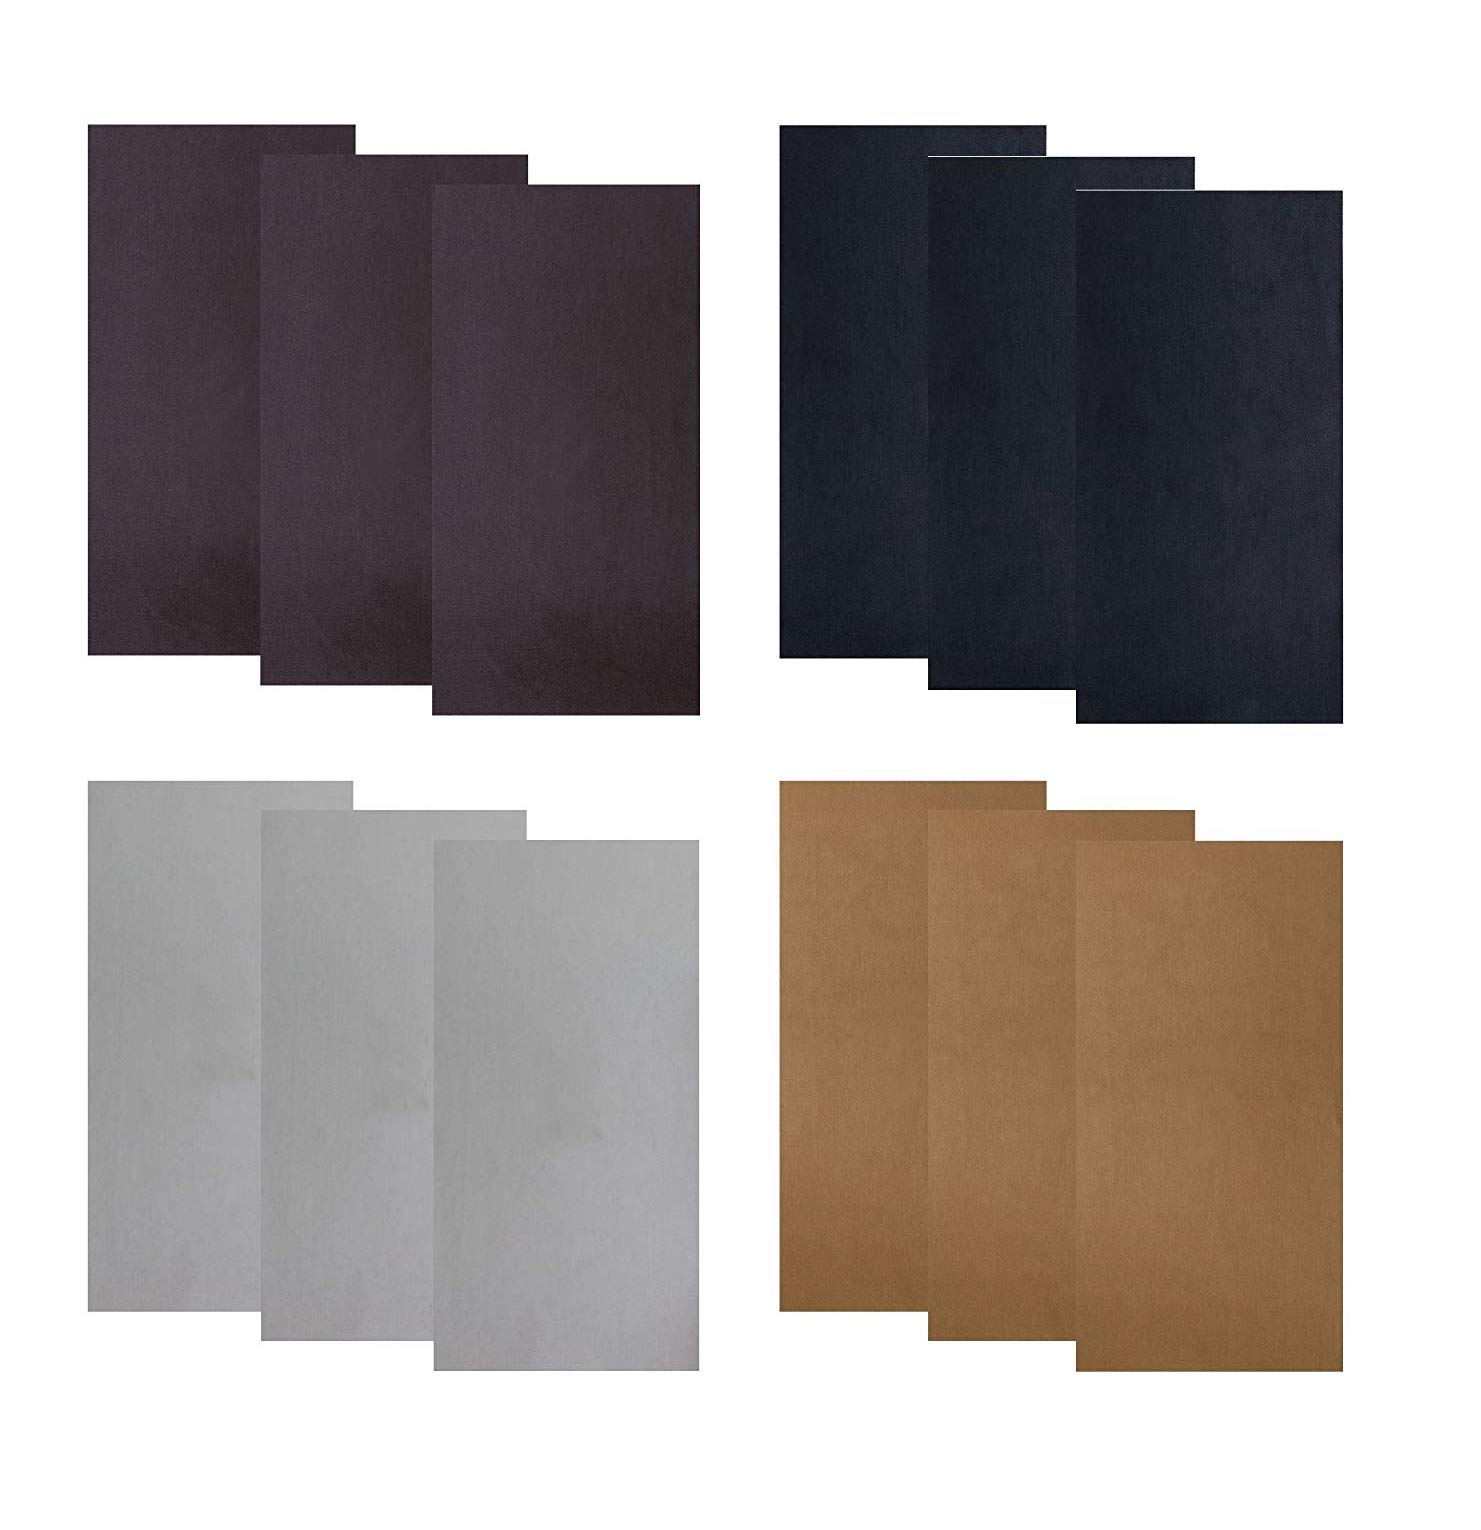 12 PCS Leather Repair Patch,4x8 Inch Leather Adhesive Kit for Couch Furniture Sofas Car Seats Handbags Jackets (Black,Grey,Brown,Dark Brown) by Wocst